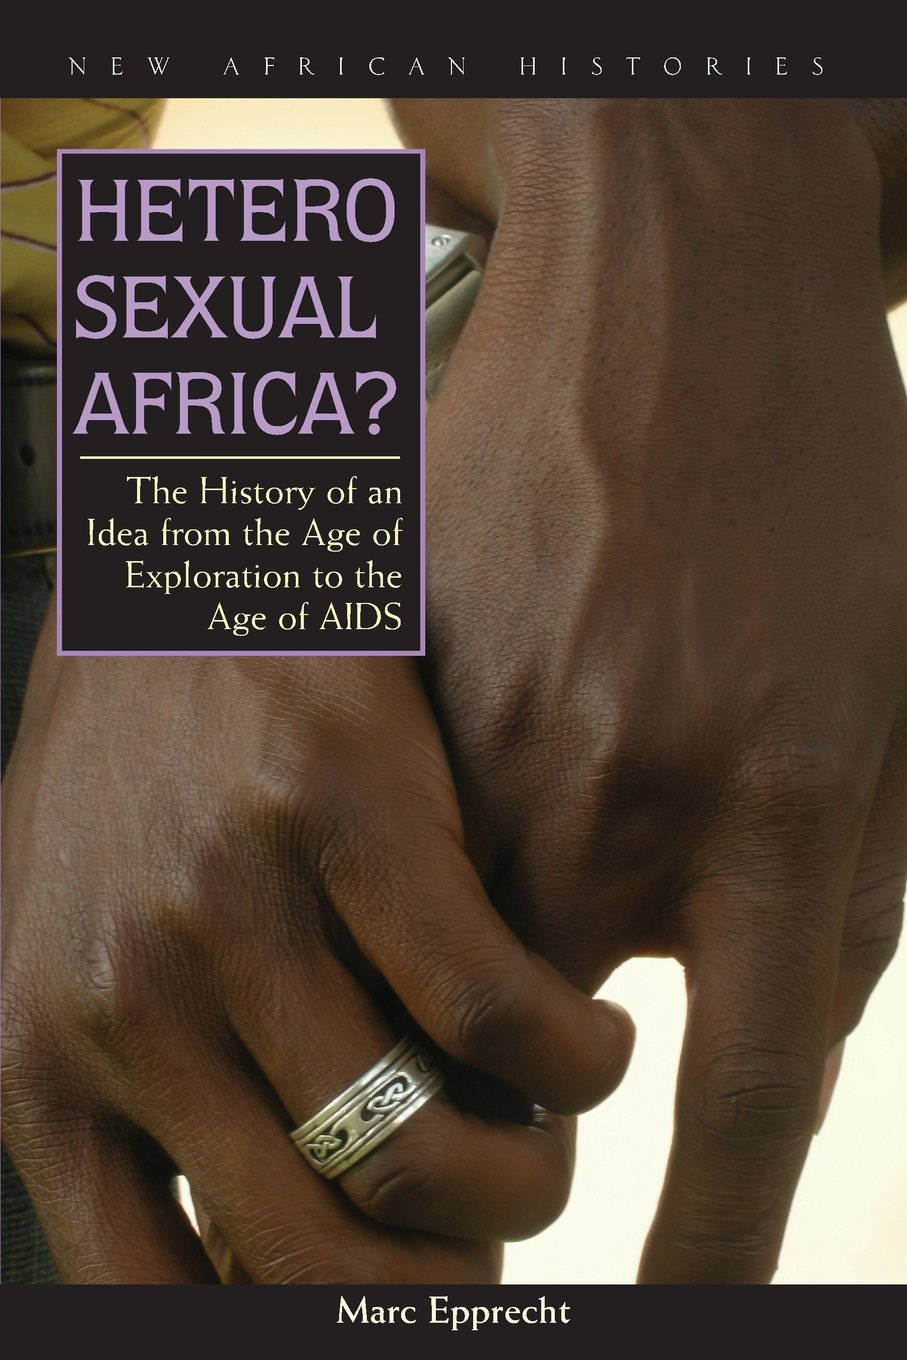 Read Online Heterosexual Africa?: The History of an Idea from the Age of Exploration to the Age of AIDS (New African Histories) PDF